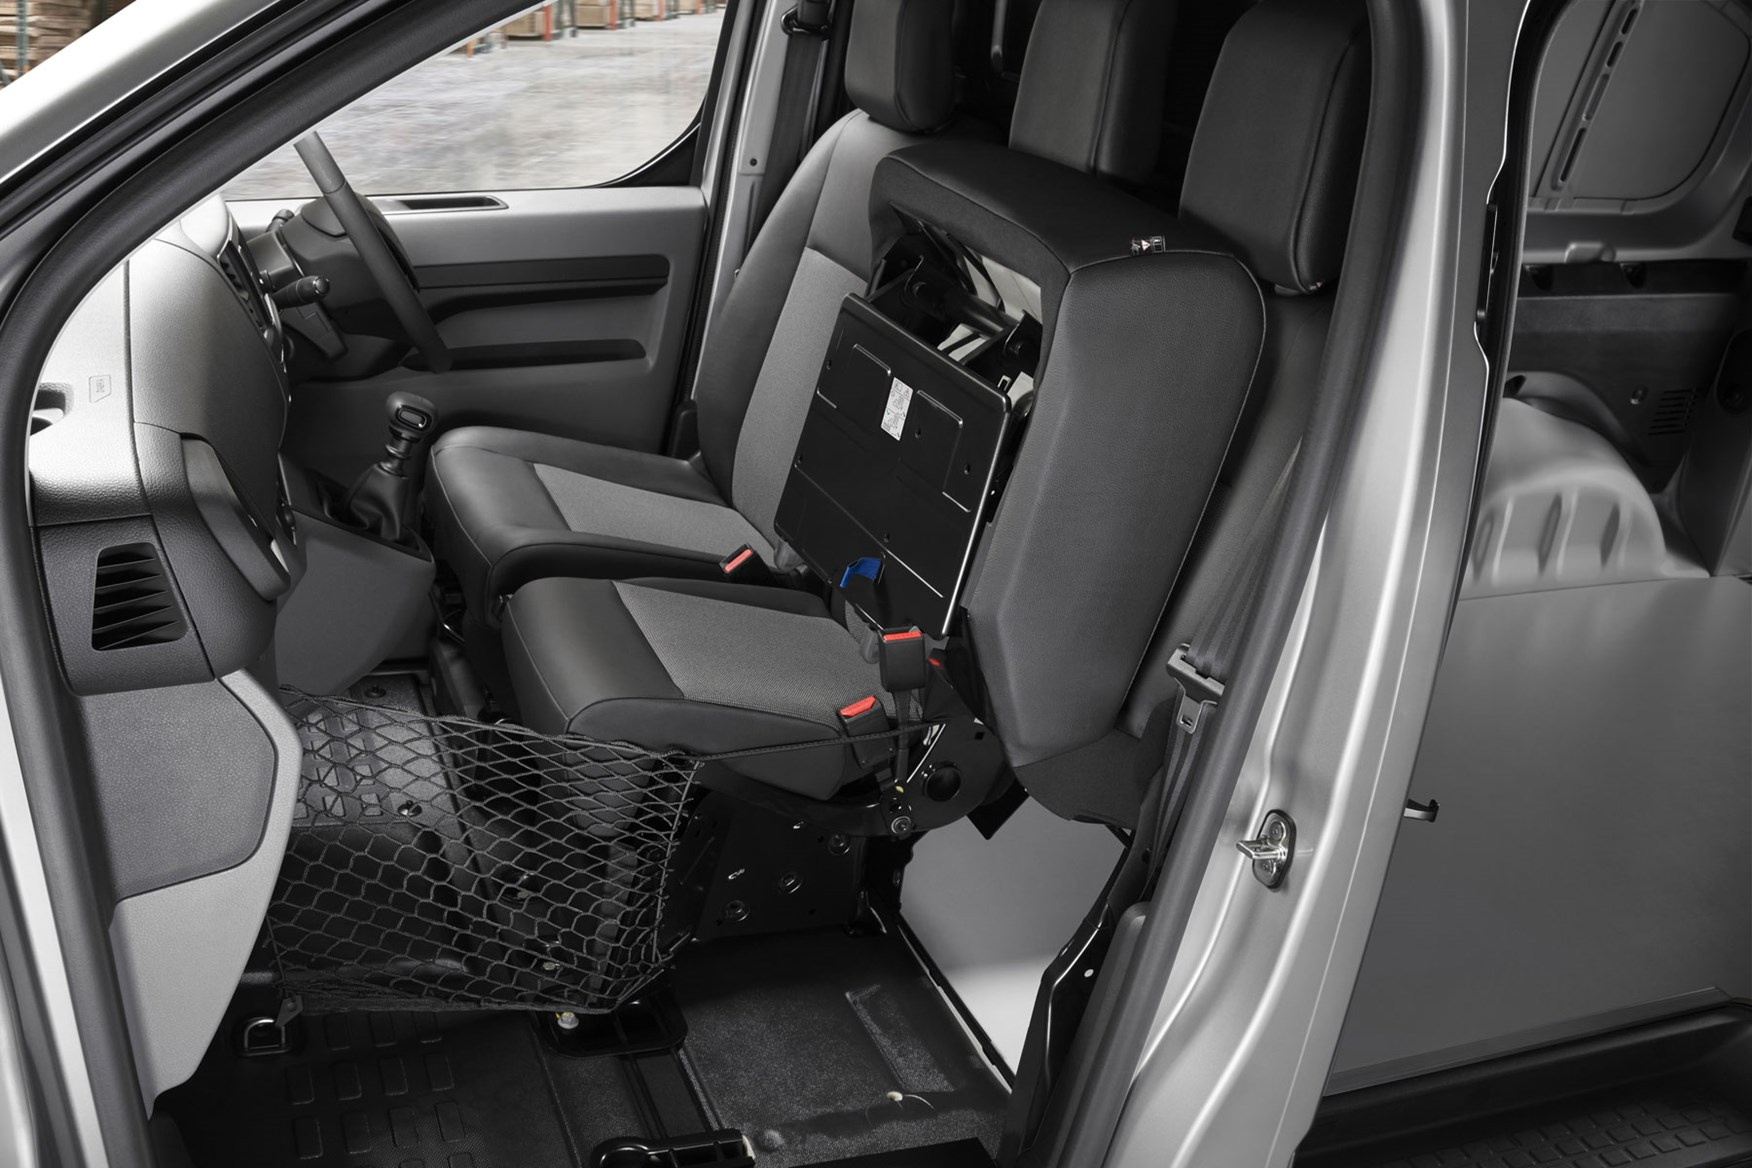 Peugeot Expert - 2016 model, cab interior viewed from passenger side, Moduwork bulkhead with passenger seat folded up and net fitted